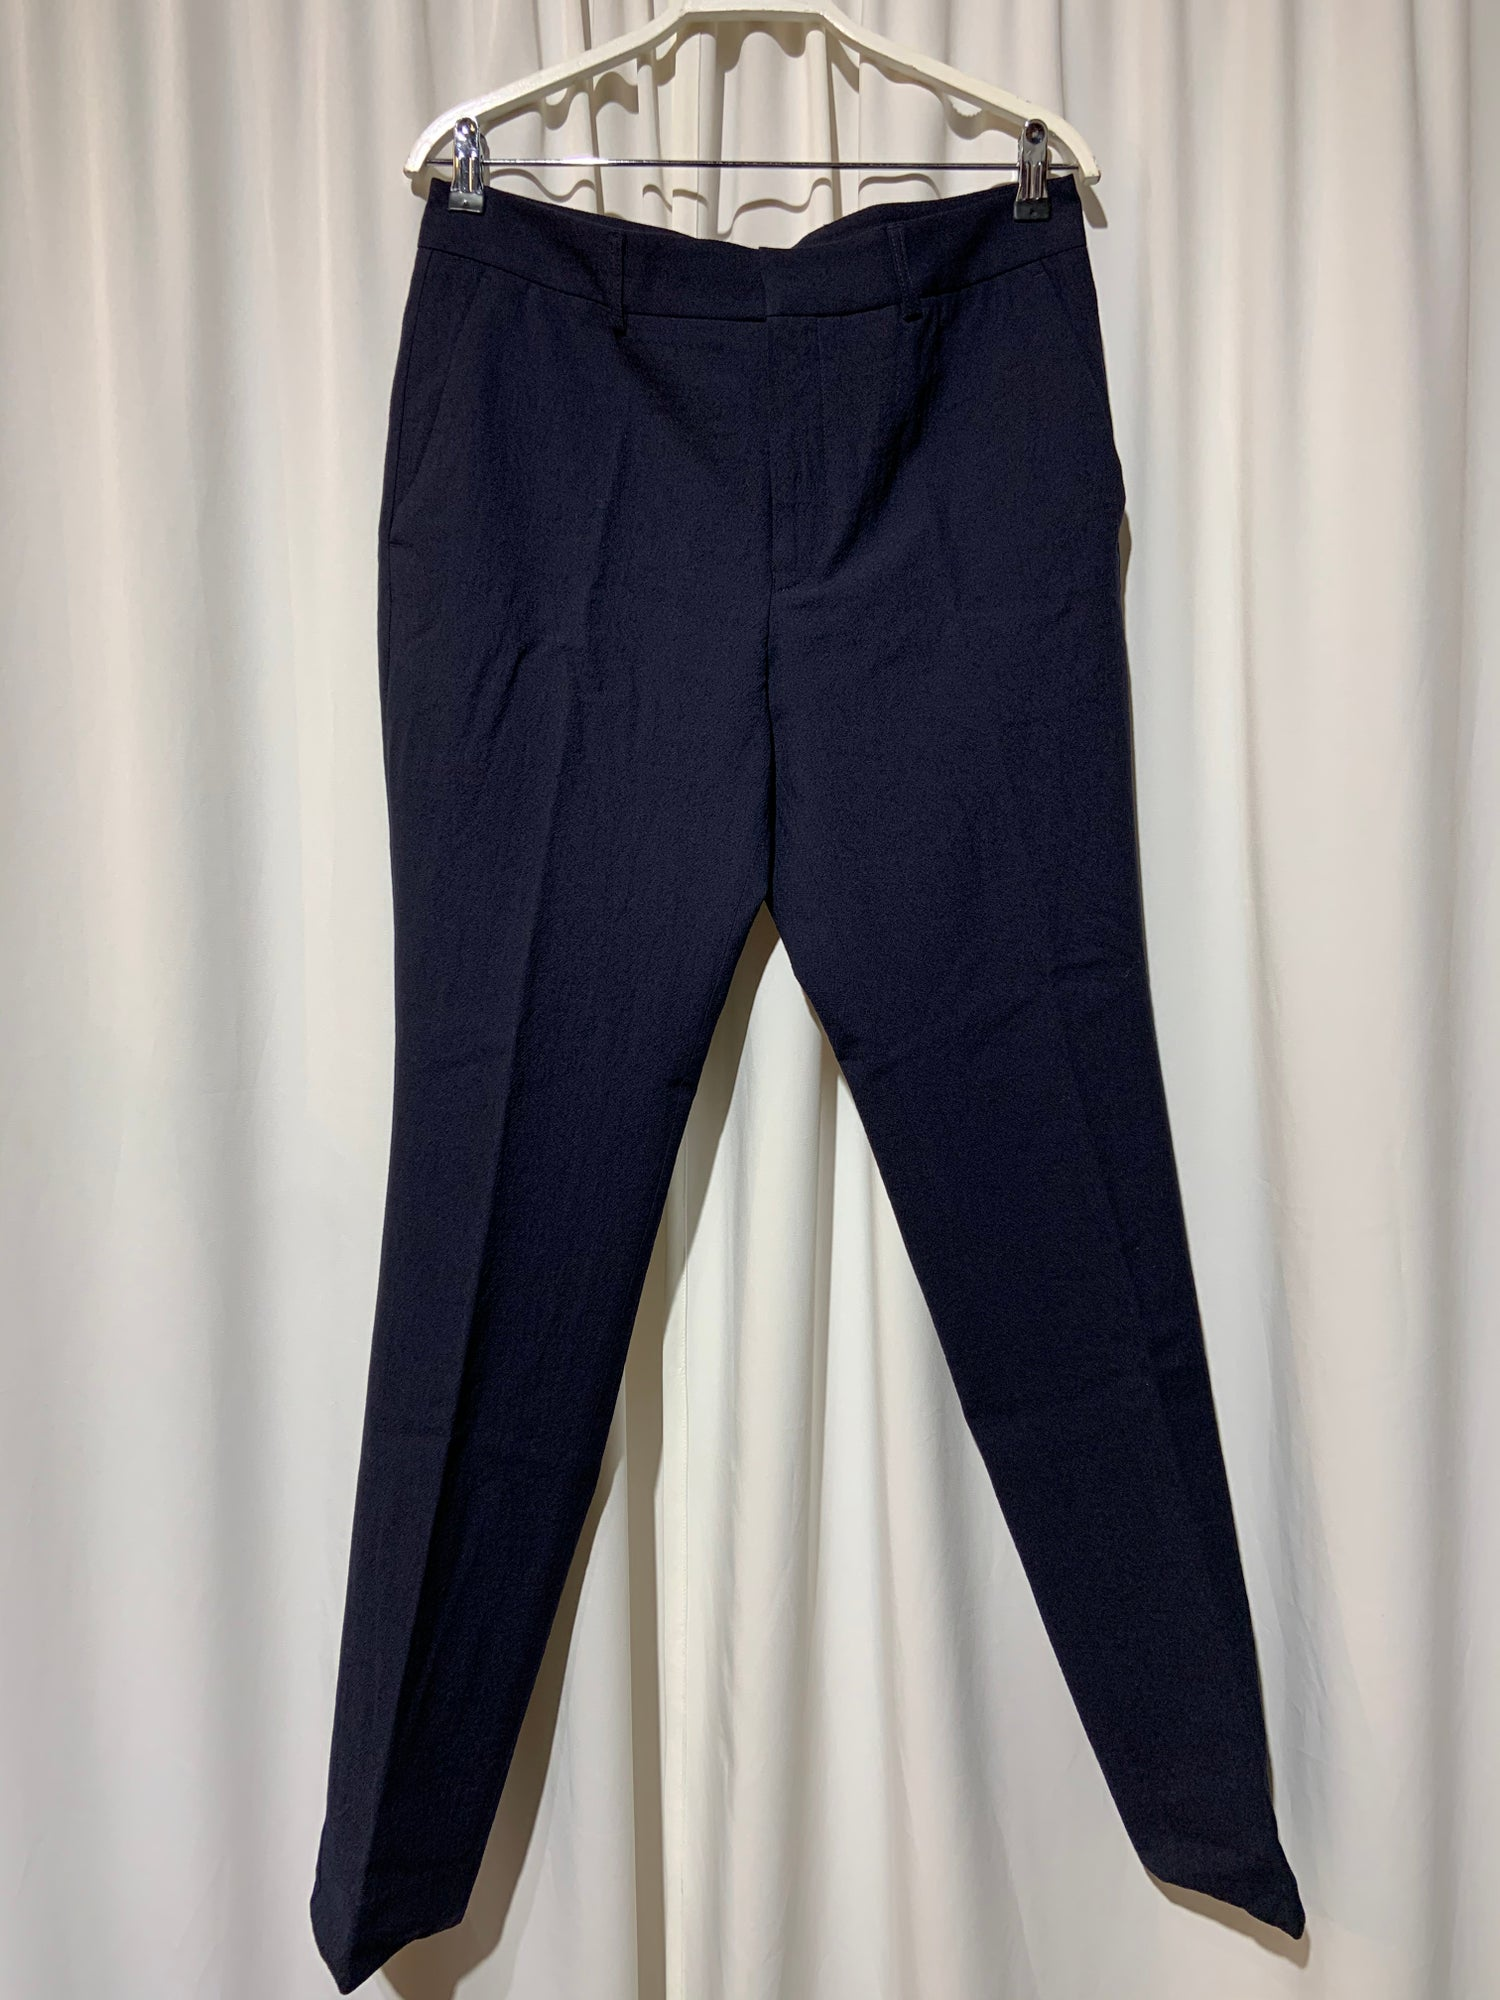 Image of DELIKATESSEN trousers Navy